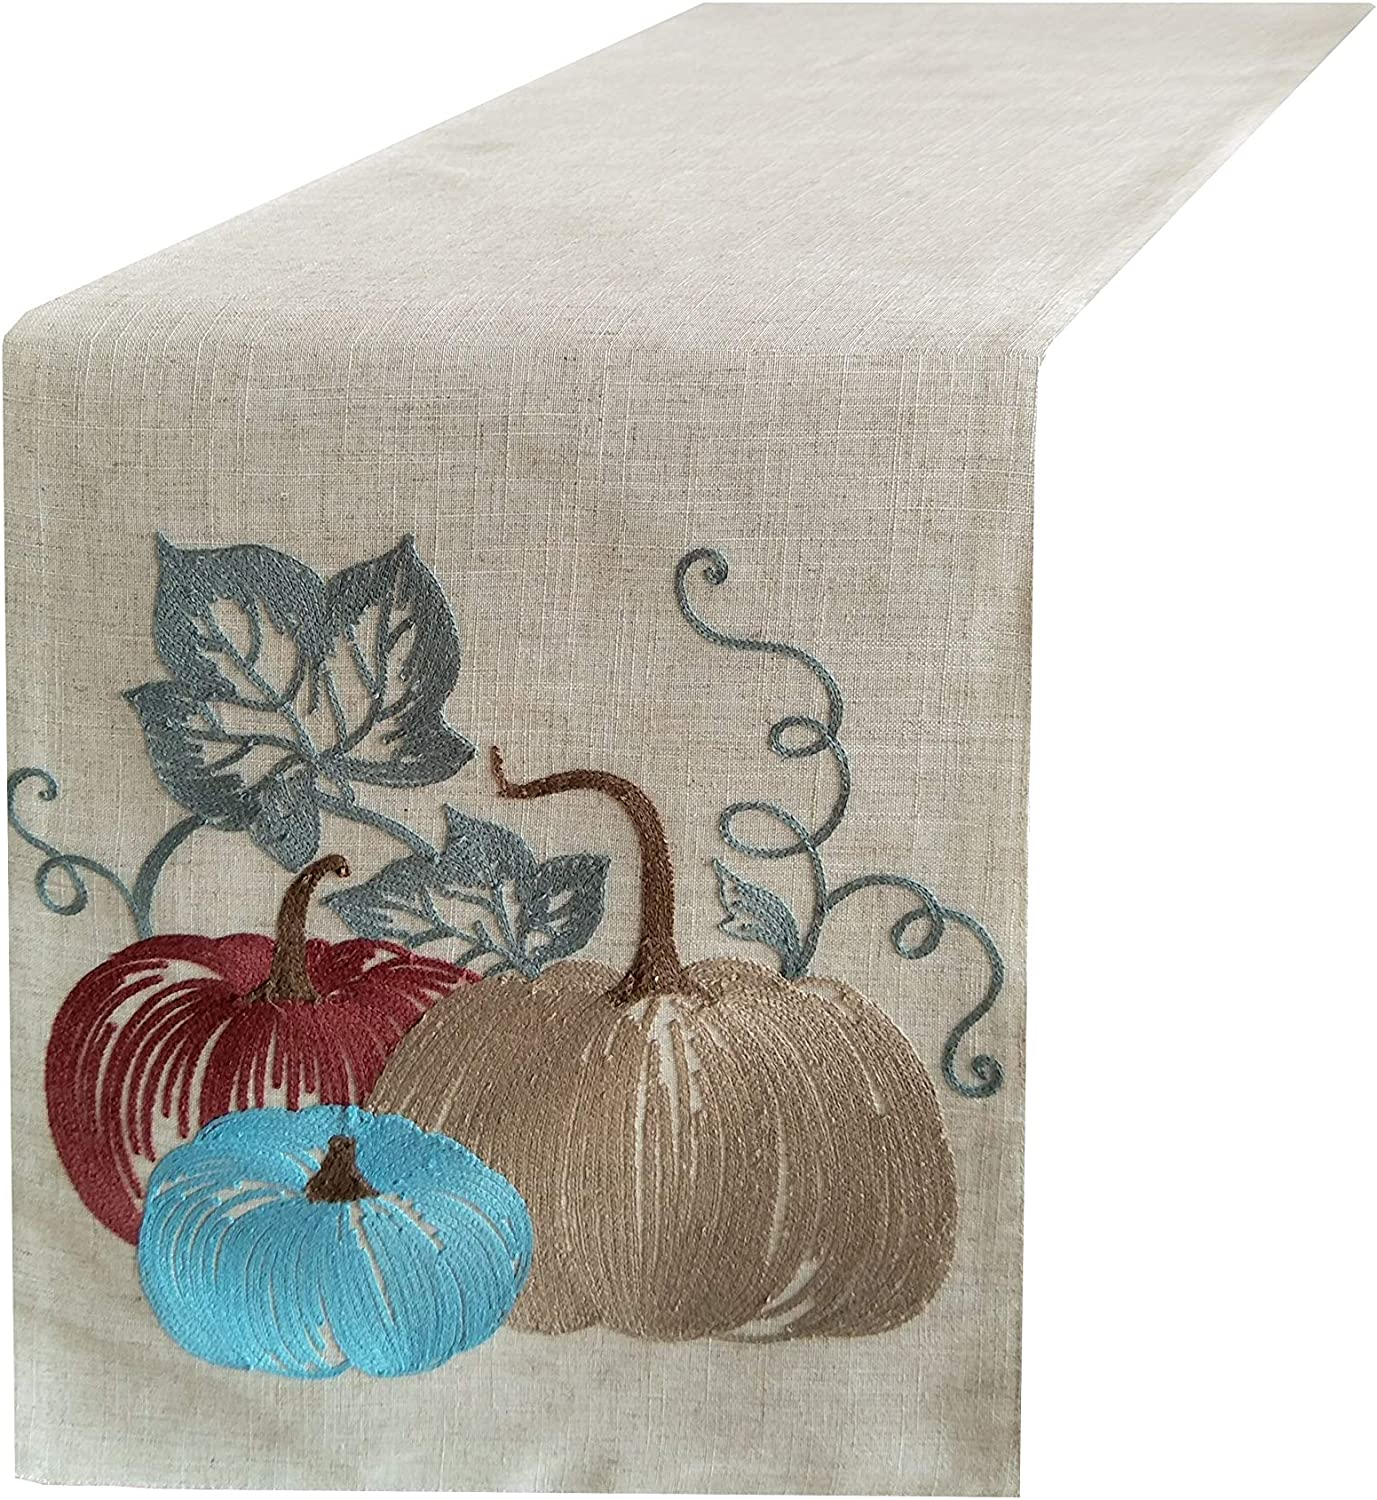 BETTINE Table Runner 72 inch,Swehome Halloween and Thanksgiving Holiday Table Runners,Fall Autumn Harvest Decorations,Linen Embroidered Pumpkins,14x72 Inches Long for Dining Coffee Table